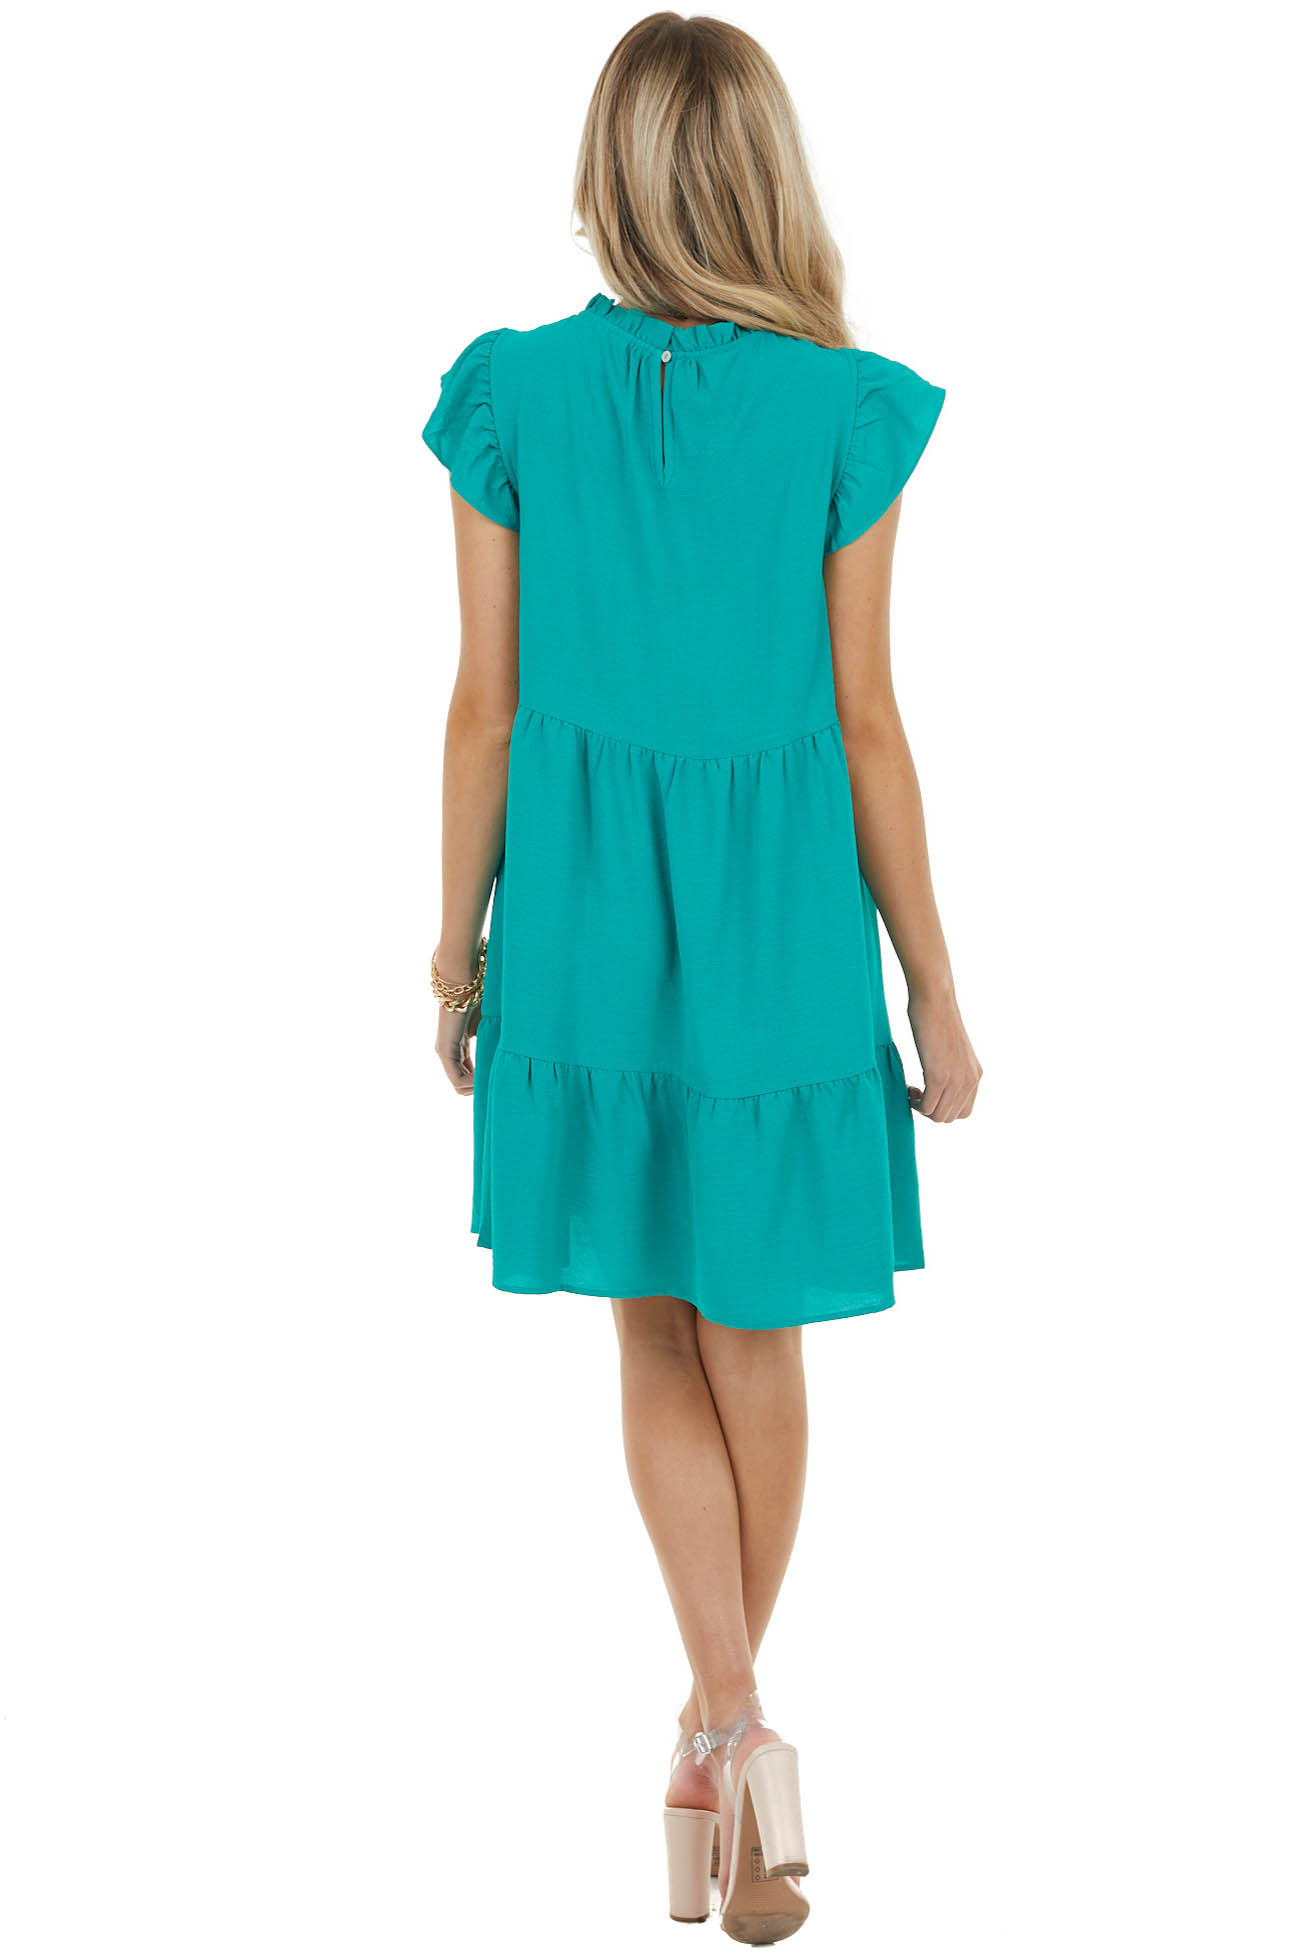 Jade Green Mock Neck Mini Tiered Dress with Ruffle Details